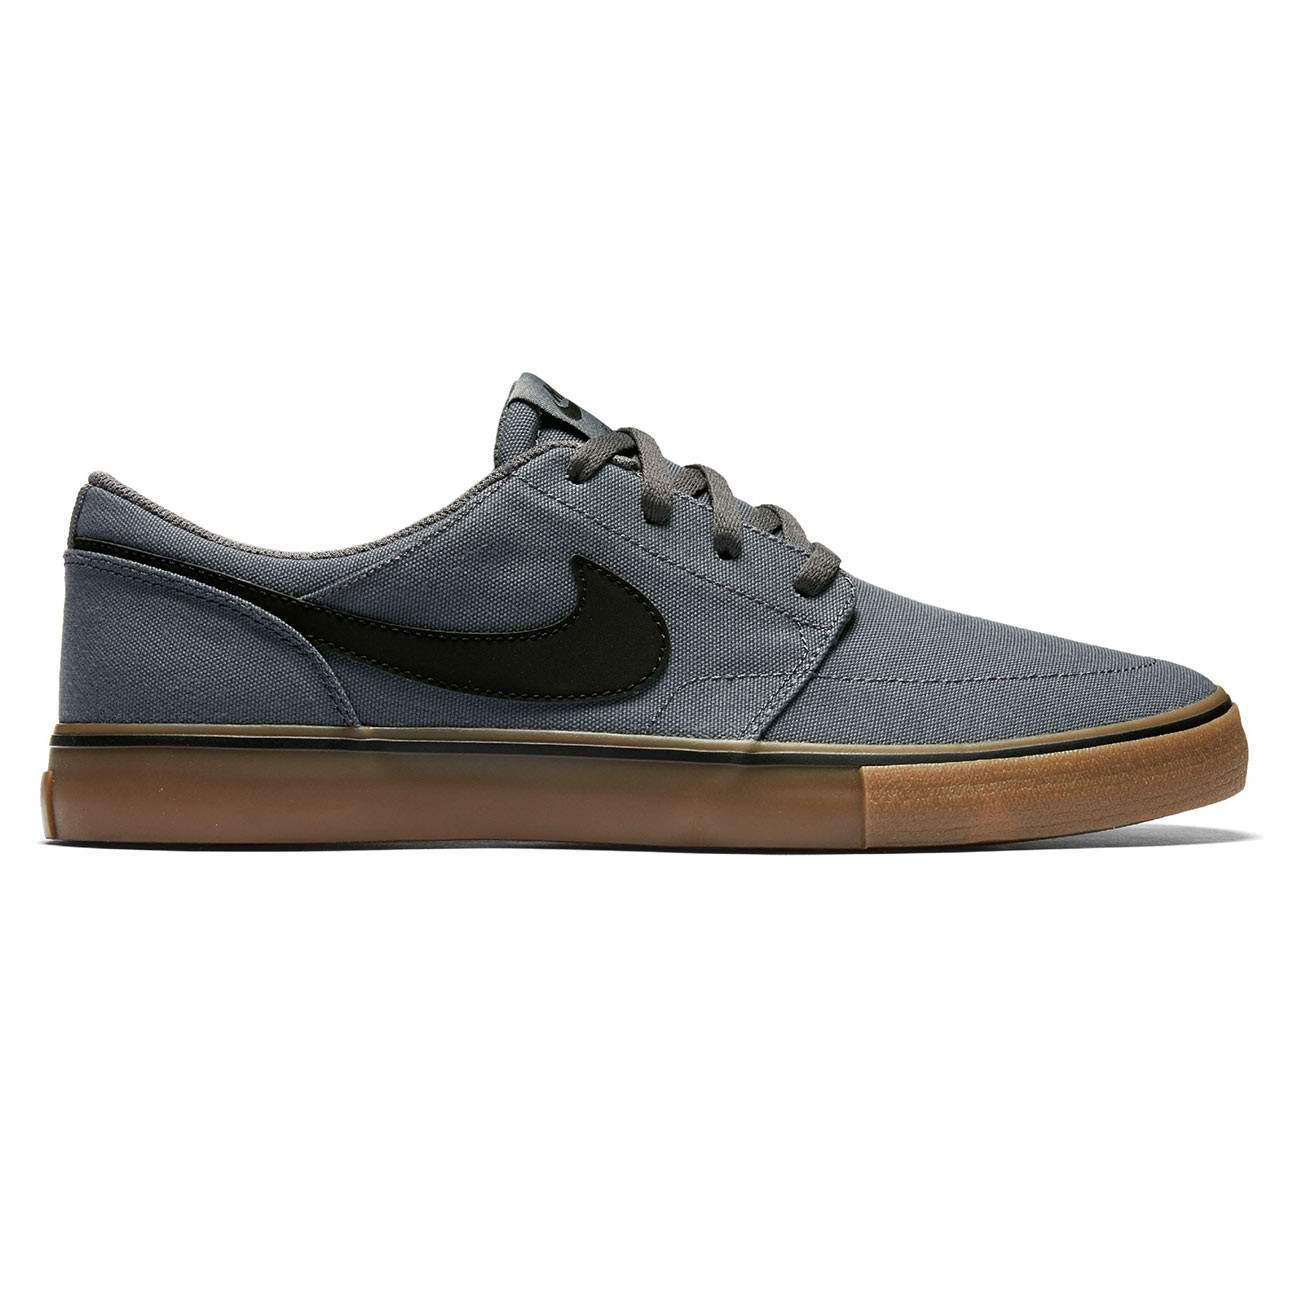 tenisky nike sb solarsoft portmore ii dark grey black gum light brown snowboard zezula. Black Bedroom Furniture Sets. Home Design Ideas